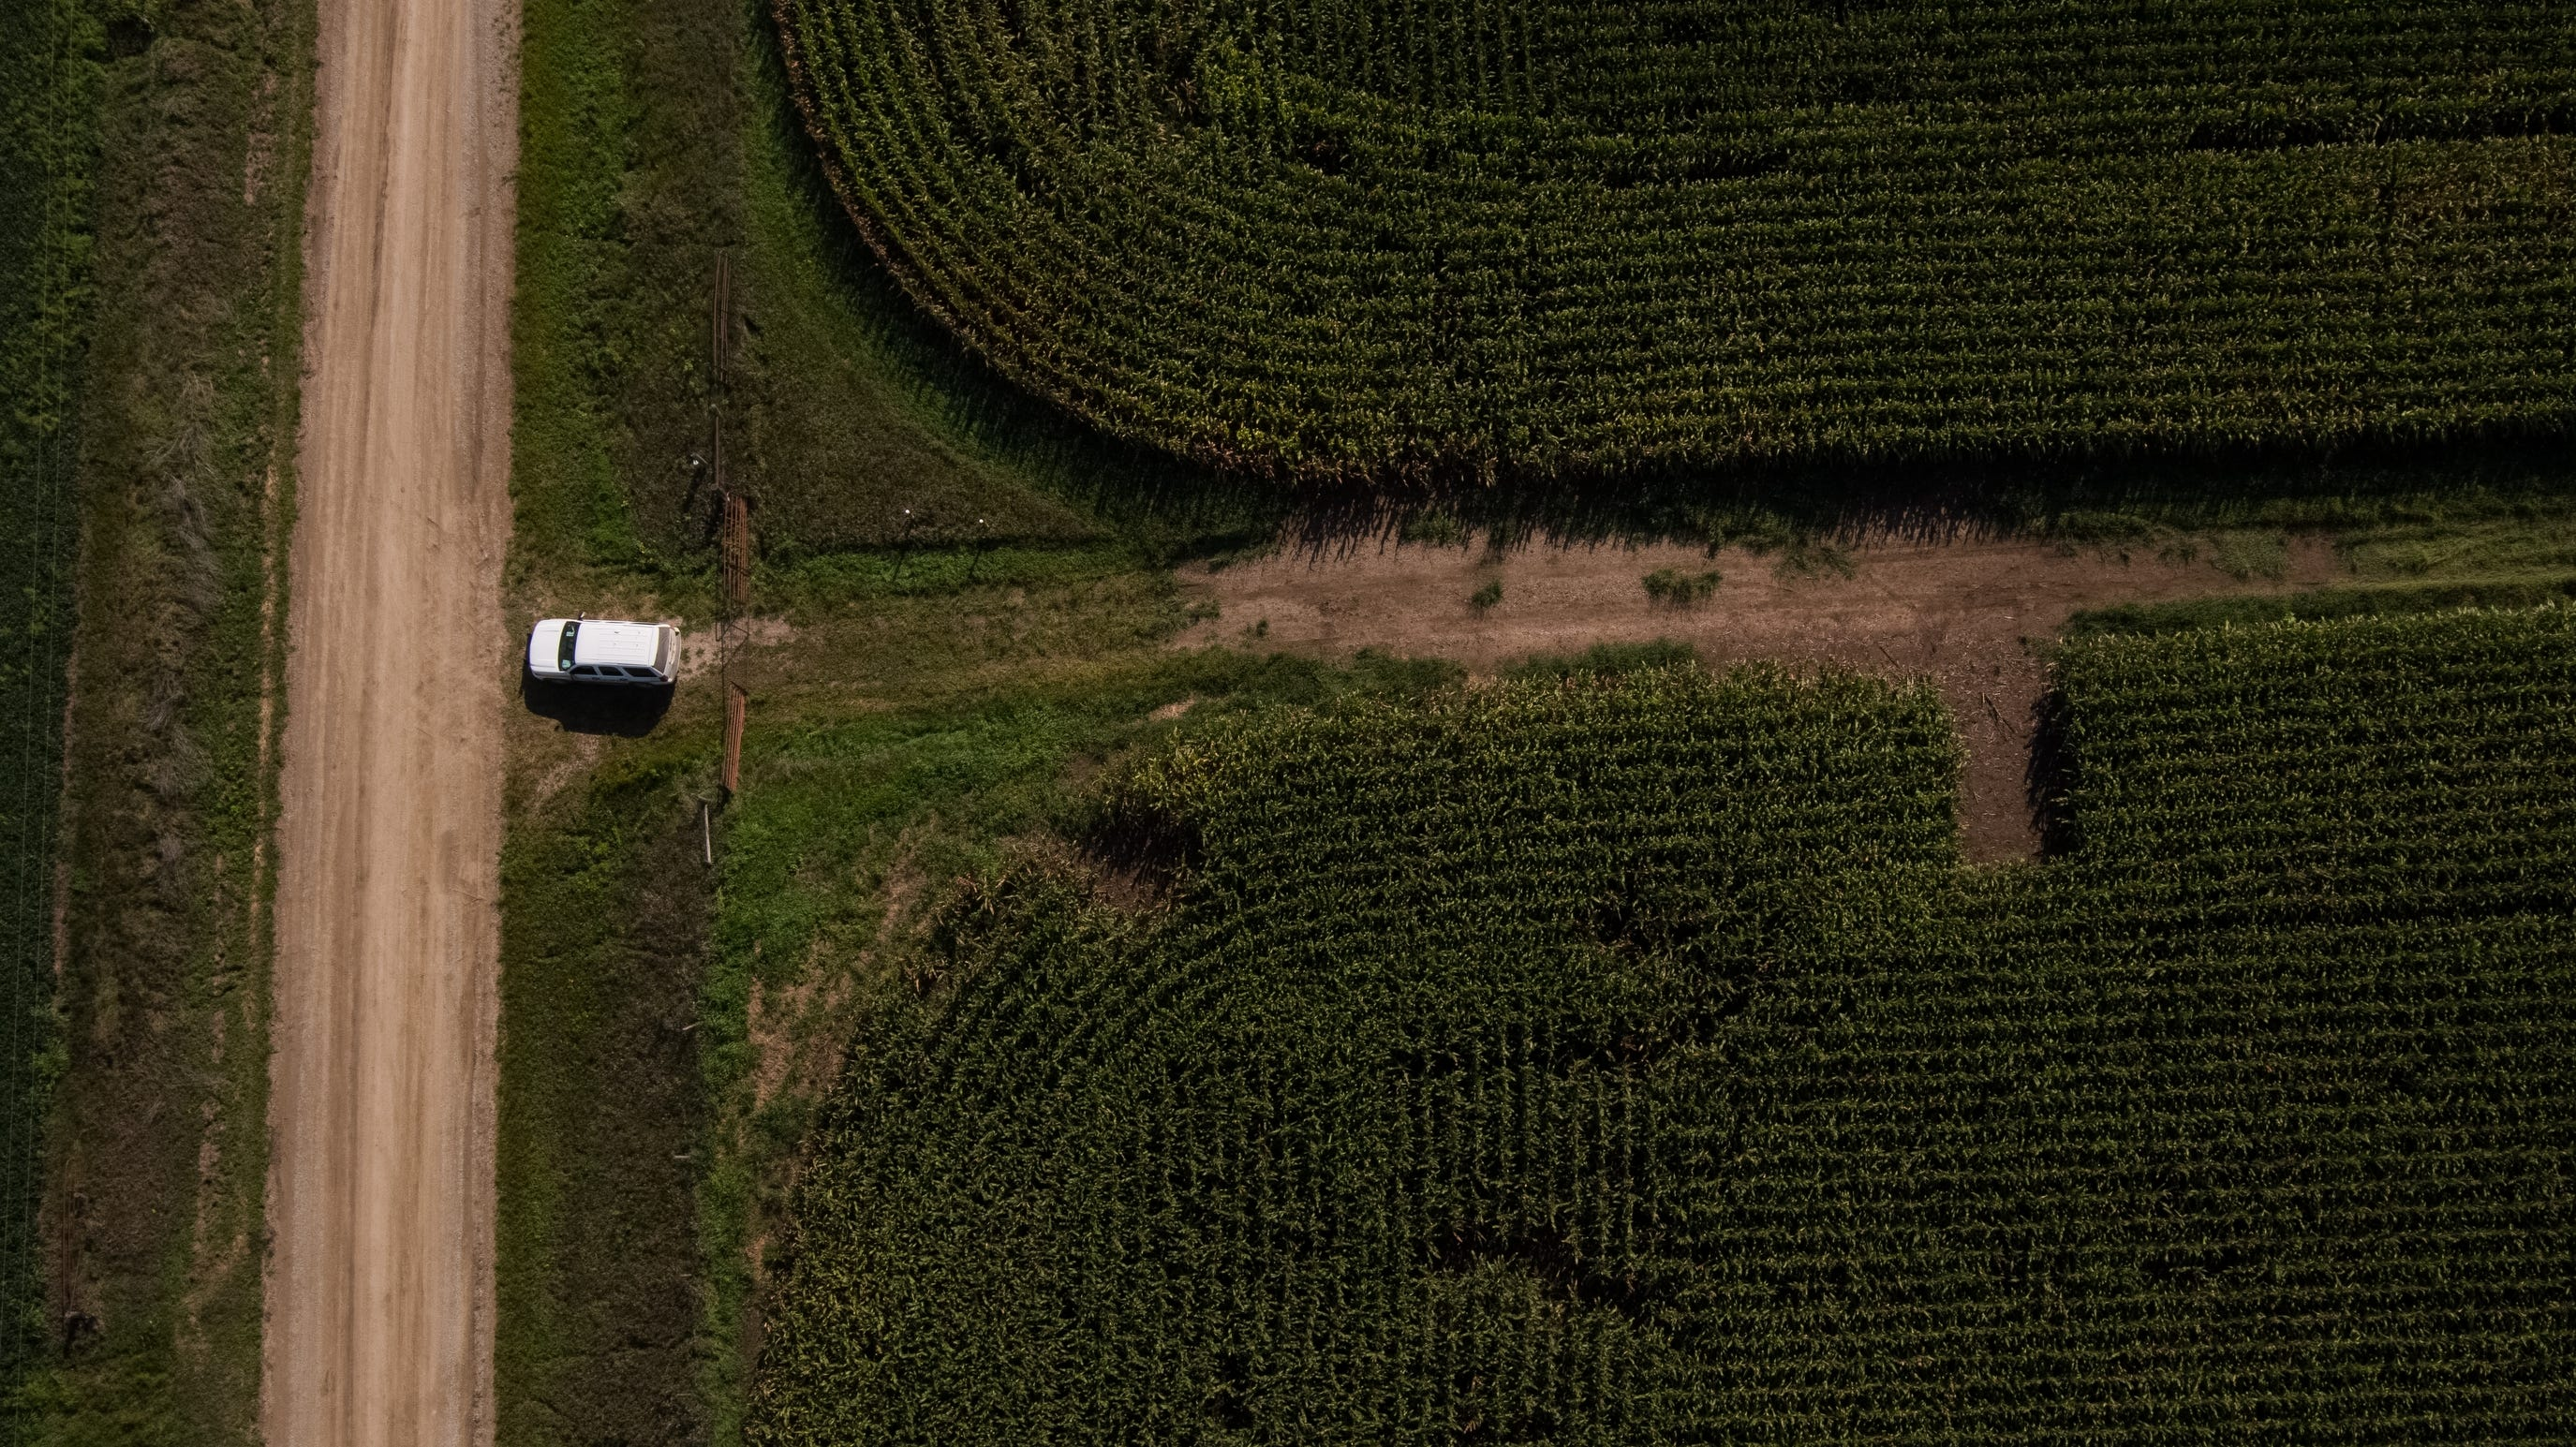 The area in a cornfield outside of Guernsey where the remains of Mollie Tibbetts were found.